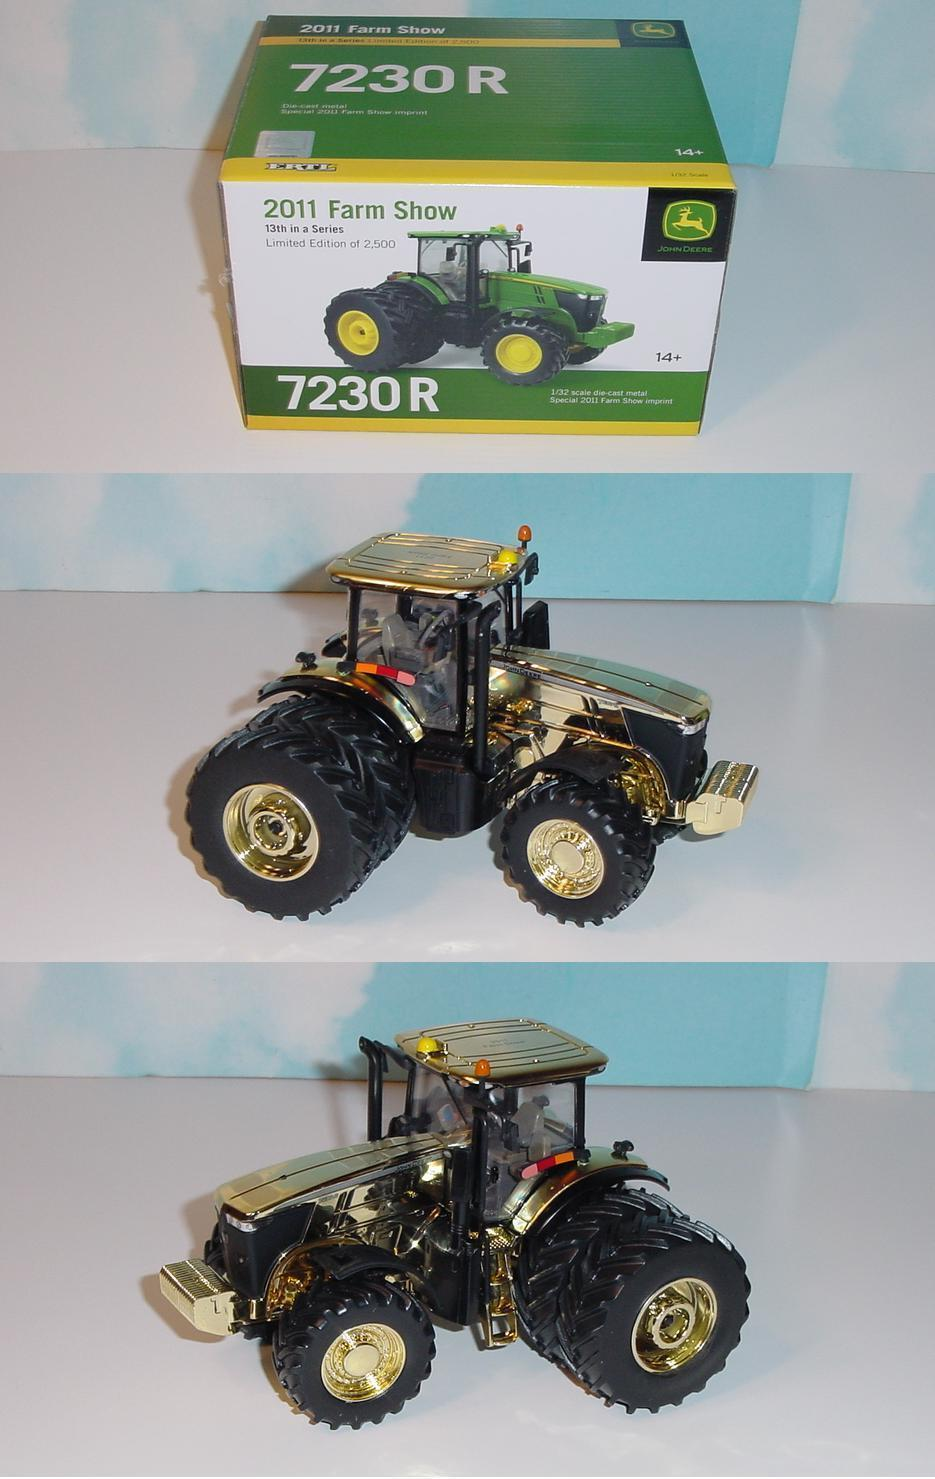 1 32 John Deere  gold Edition  7230R Farm Show Edition 2011 Tractor  Great Price